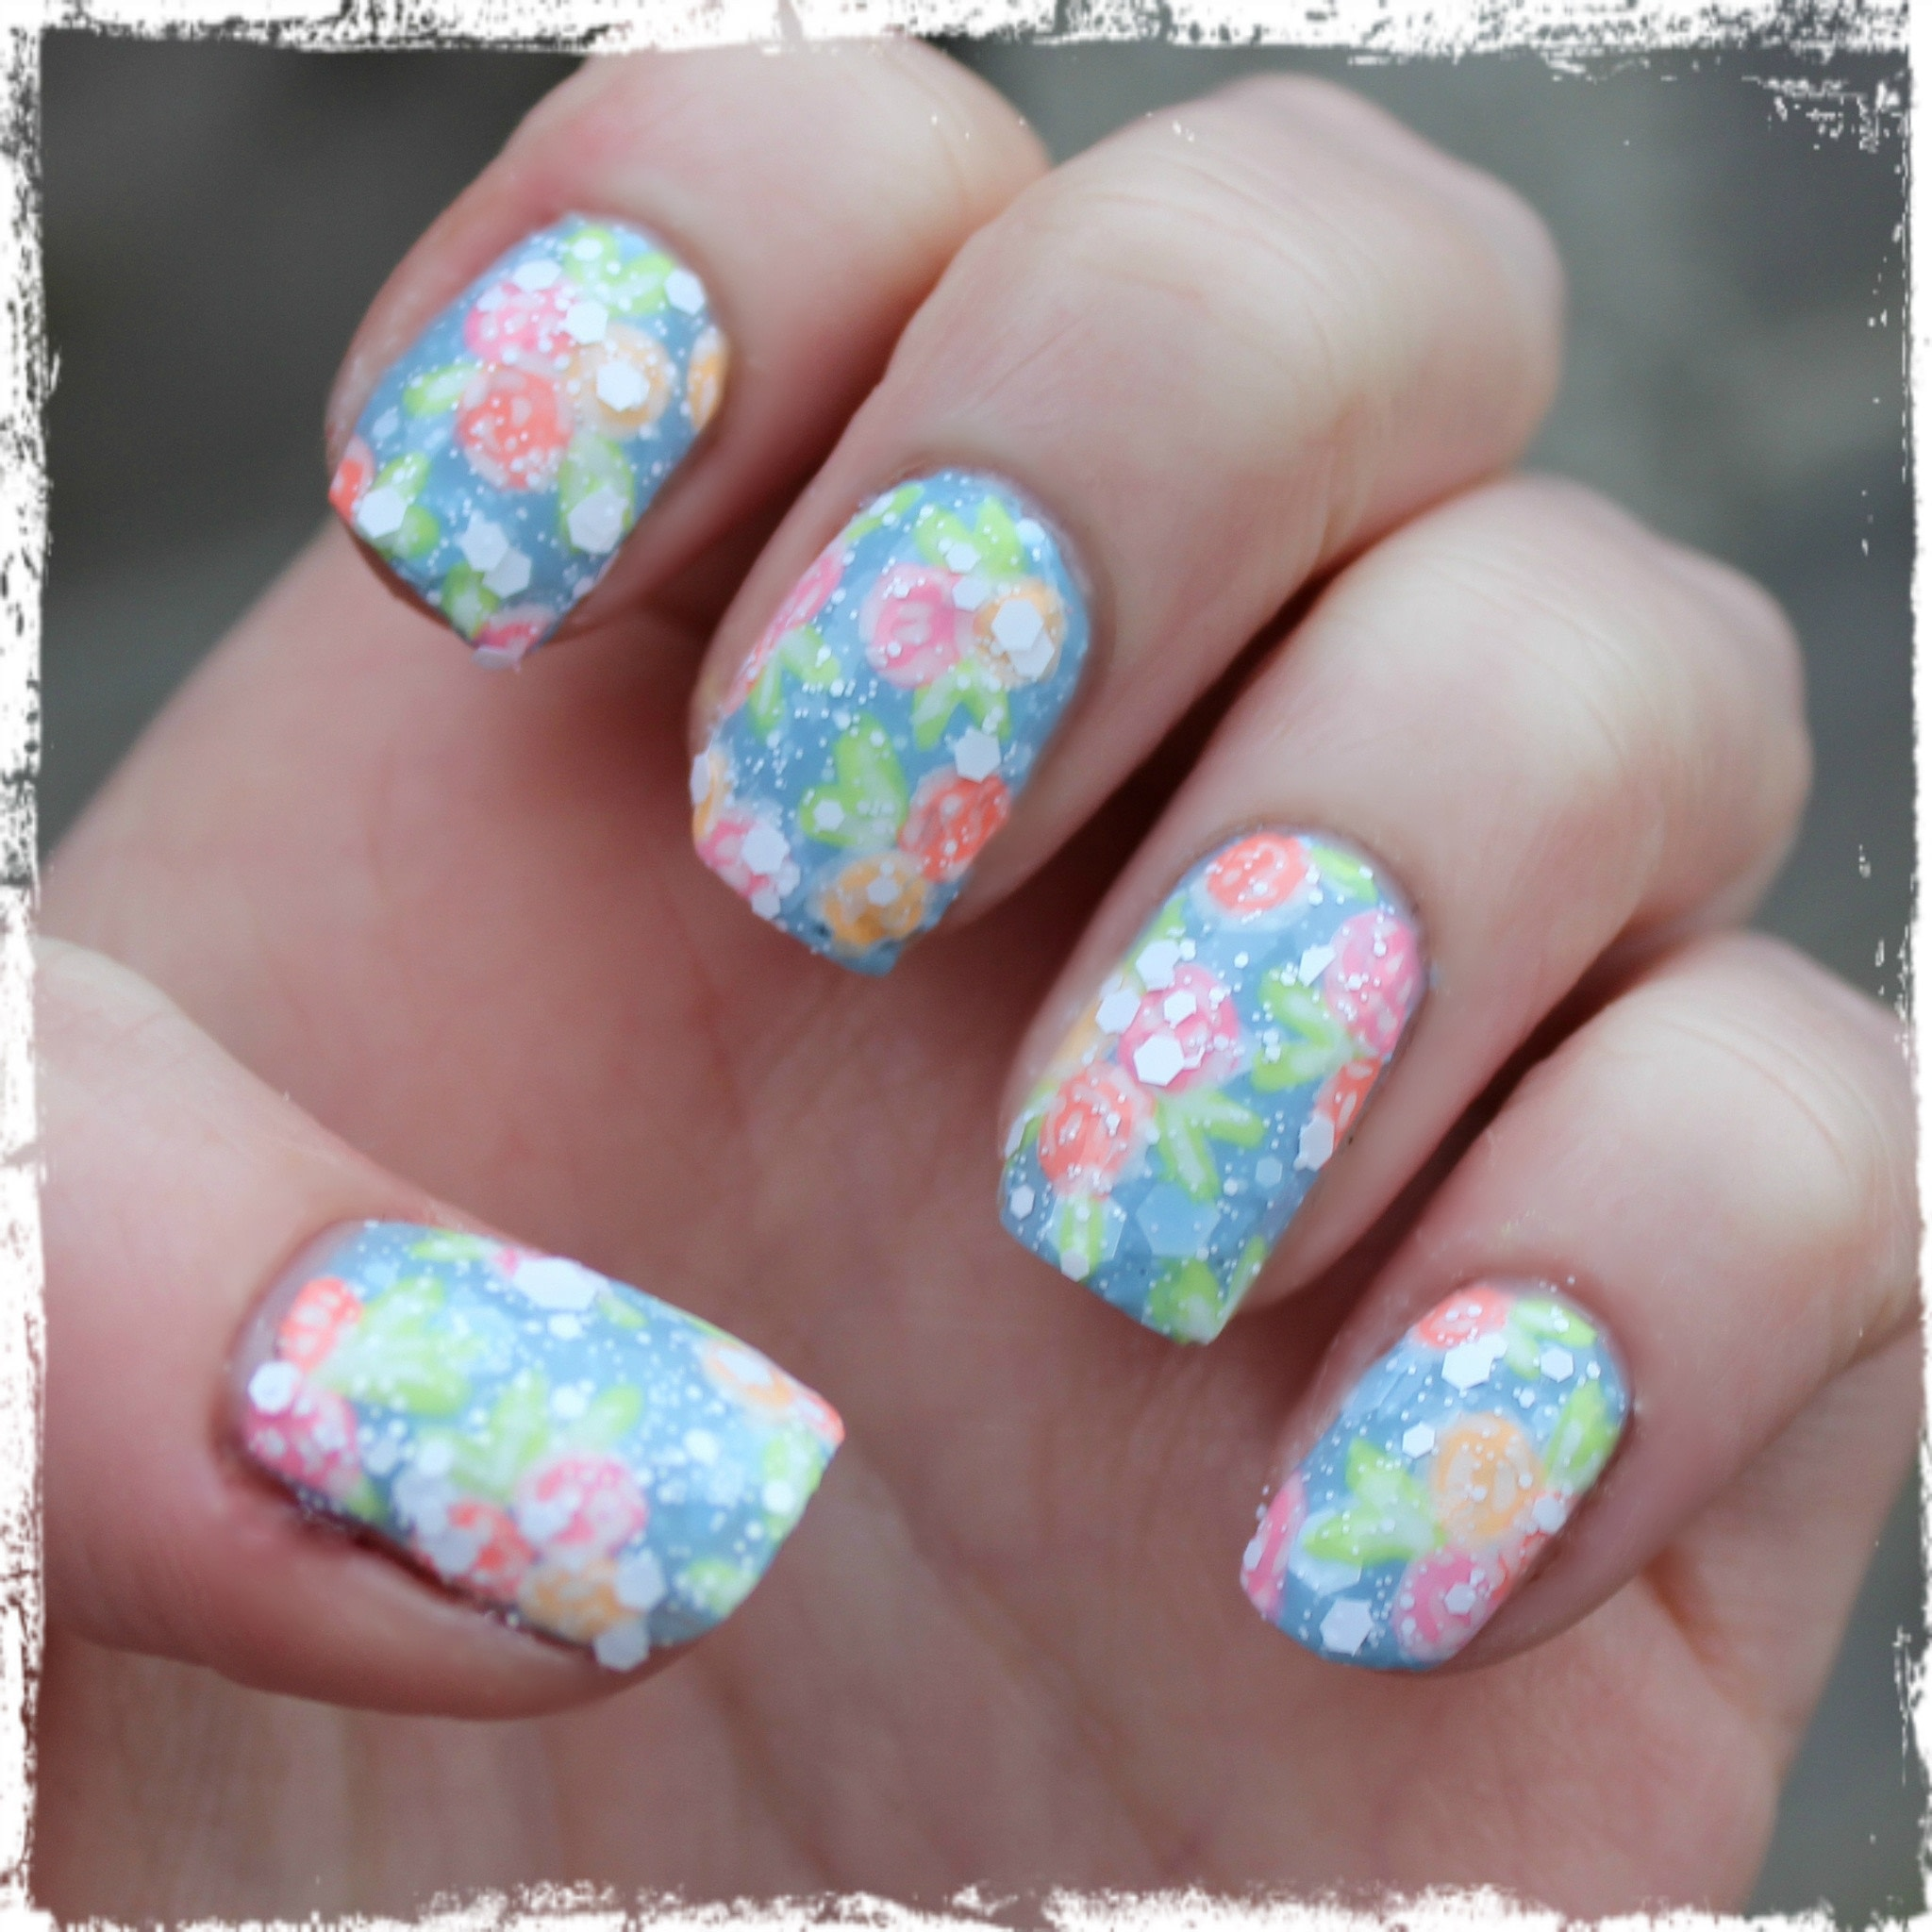 Acid Wash Floral Nails · How To Paint Patterned Nail Art